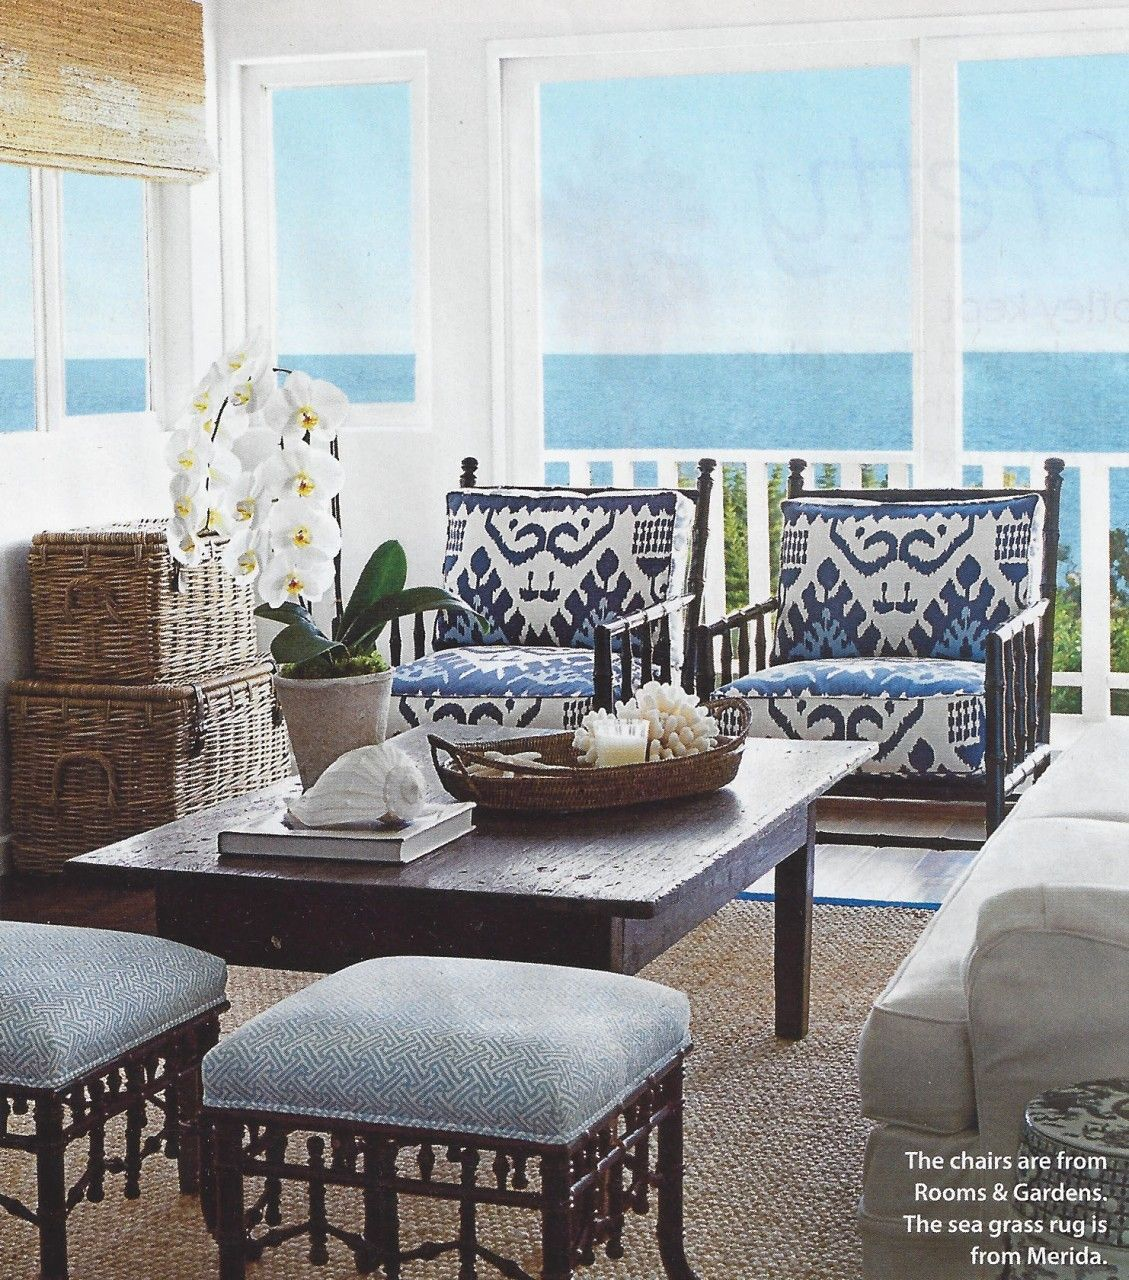 Outdoor Room in Quadrille Kazak Blue Suncloth on Chairs, Stools in Quadrille Java Java in New Blue on White (Coastal Living June 2013)